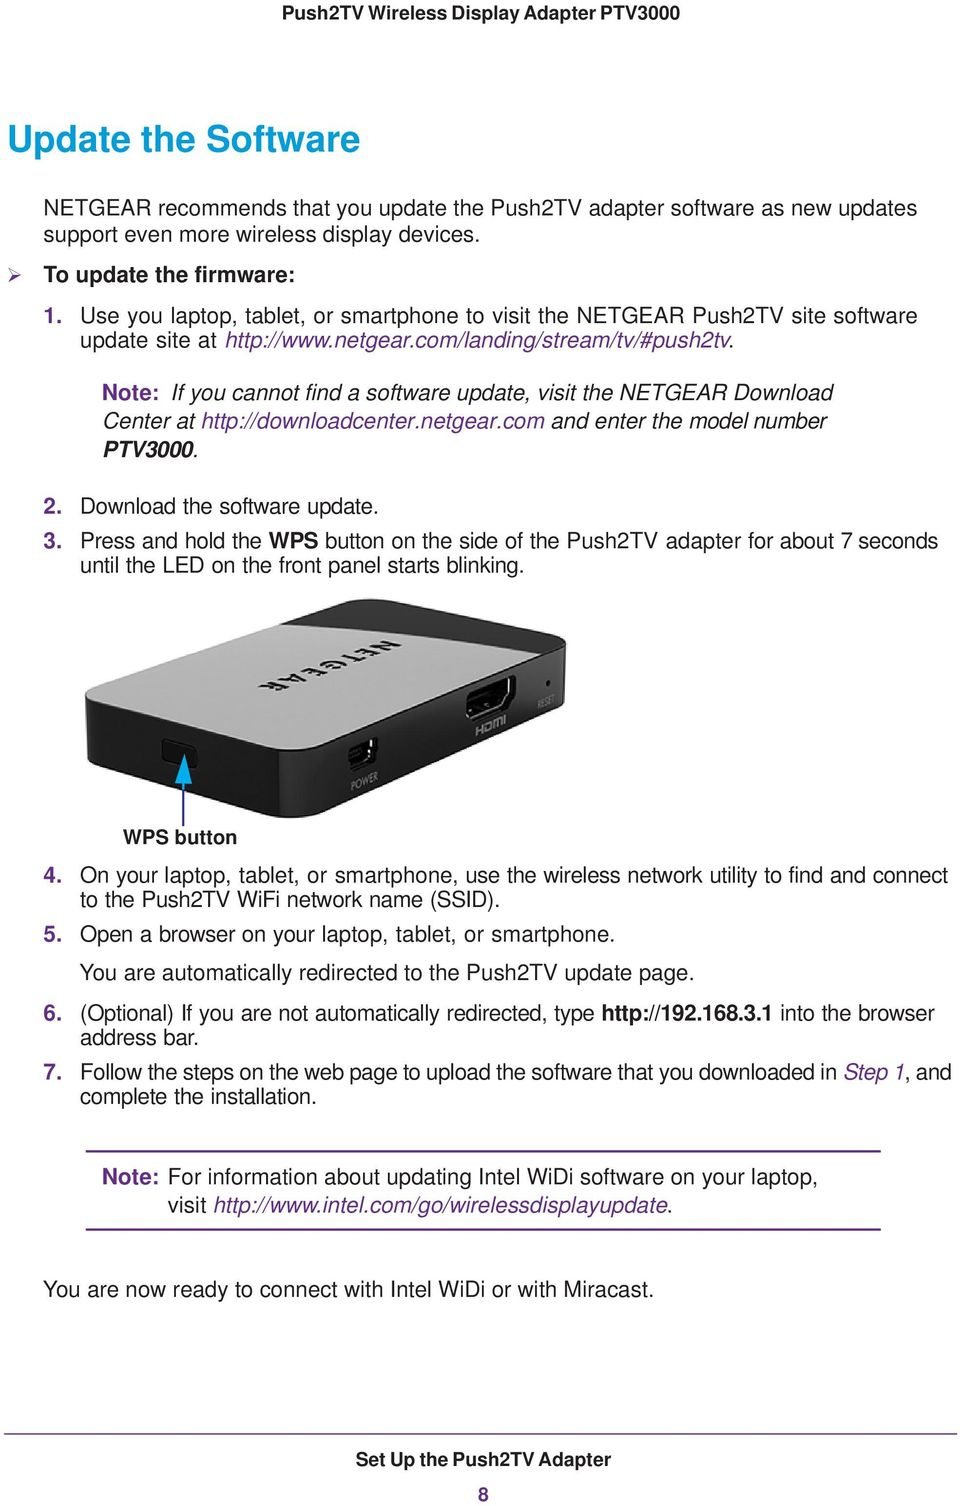 Note: If you cannot find a software update, visit the NETGEAR Download Center at http://downloadcenter.netgear.com and enter the model number PTV3000. 2. Download the software update. 3.